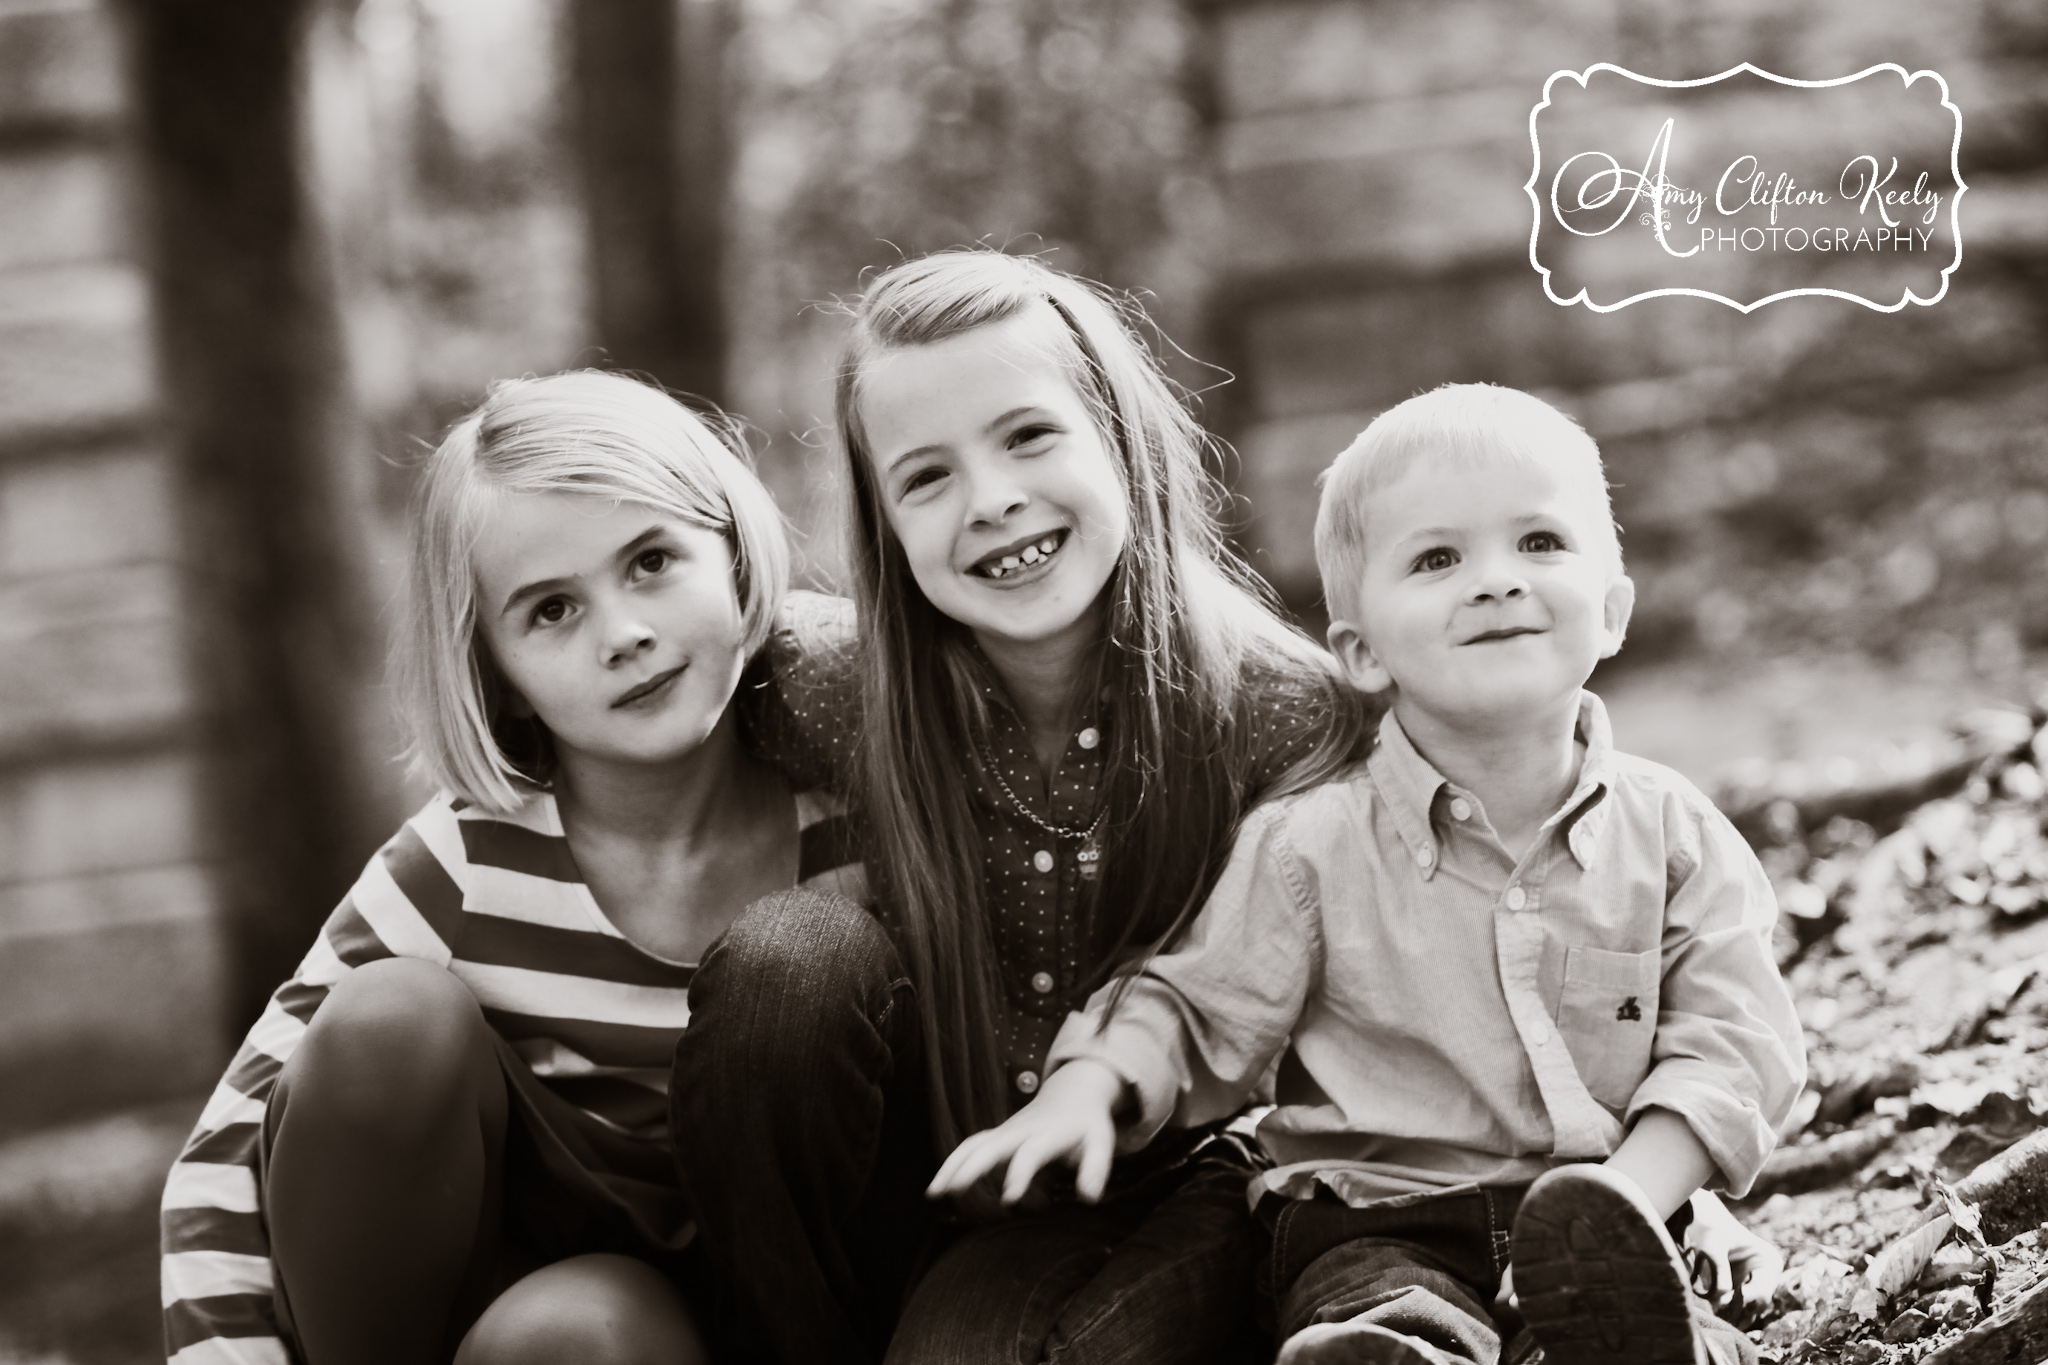 Poinsett Bridge Greenville SC Family Portraits Amy Clifton Keely Photography 08